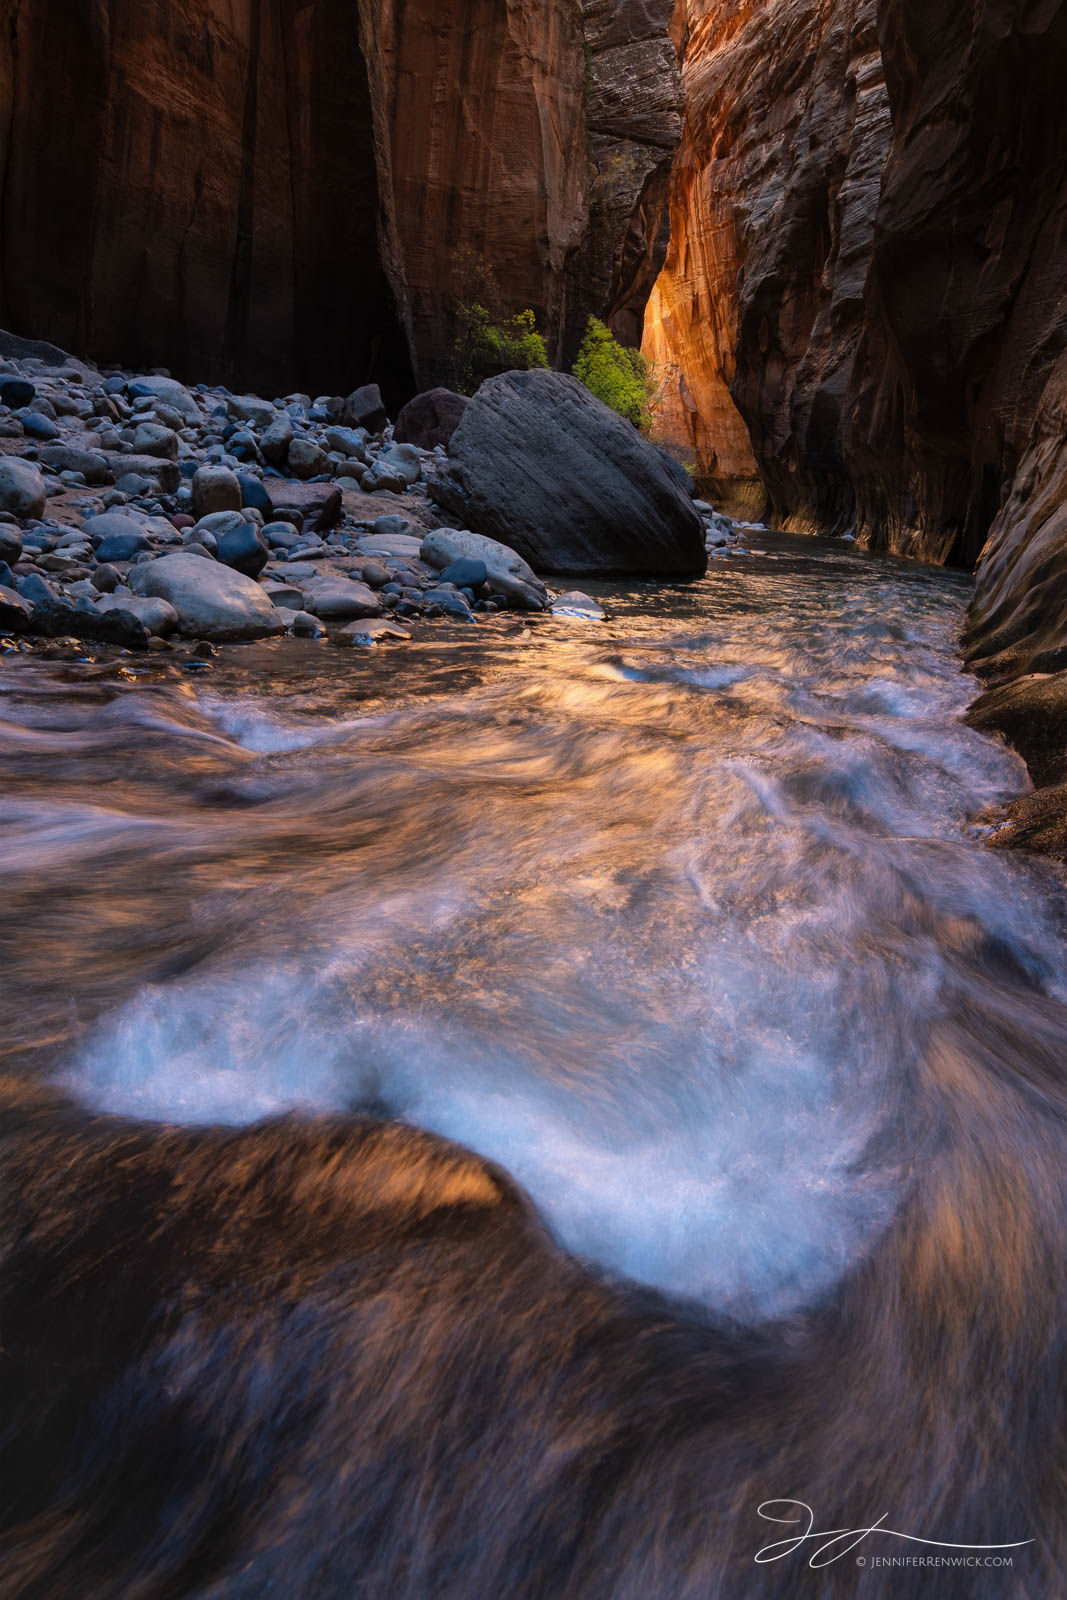 Water rushes down and reflects canyon glow in the Zion Narrows.